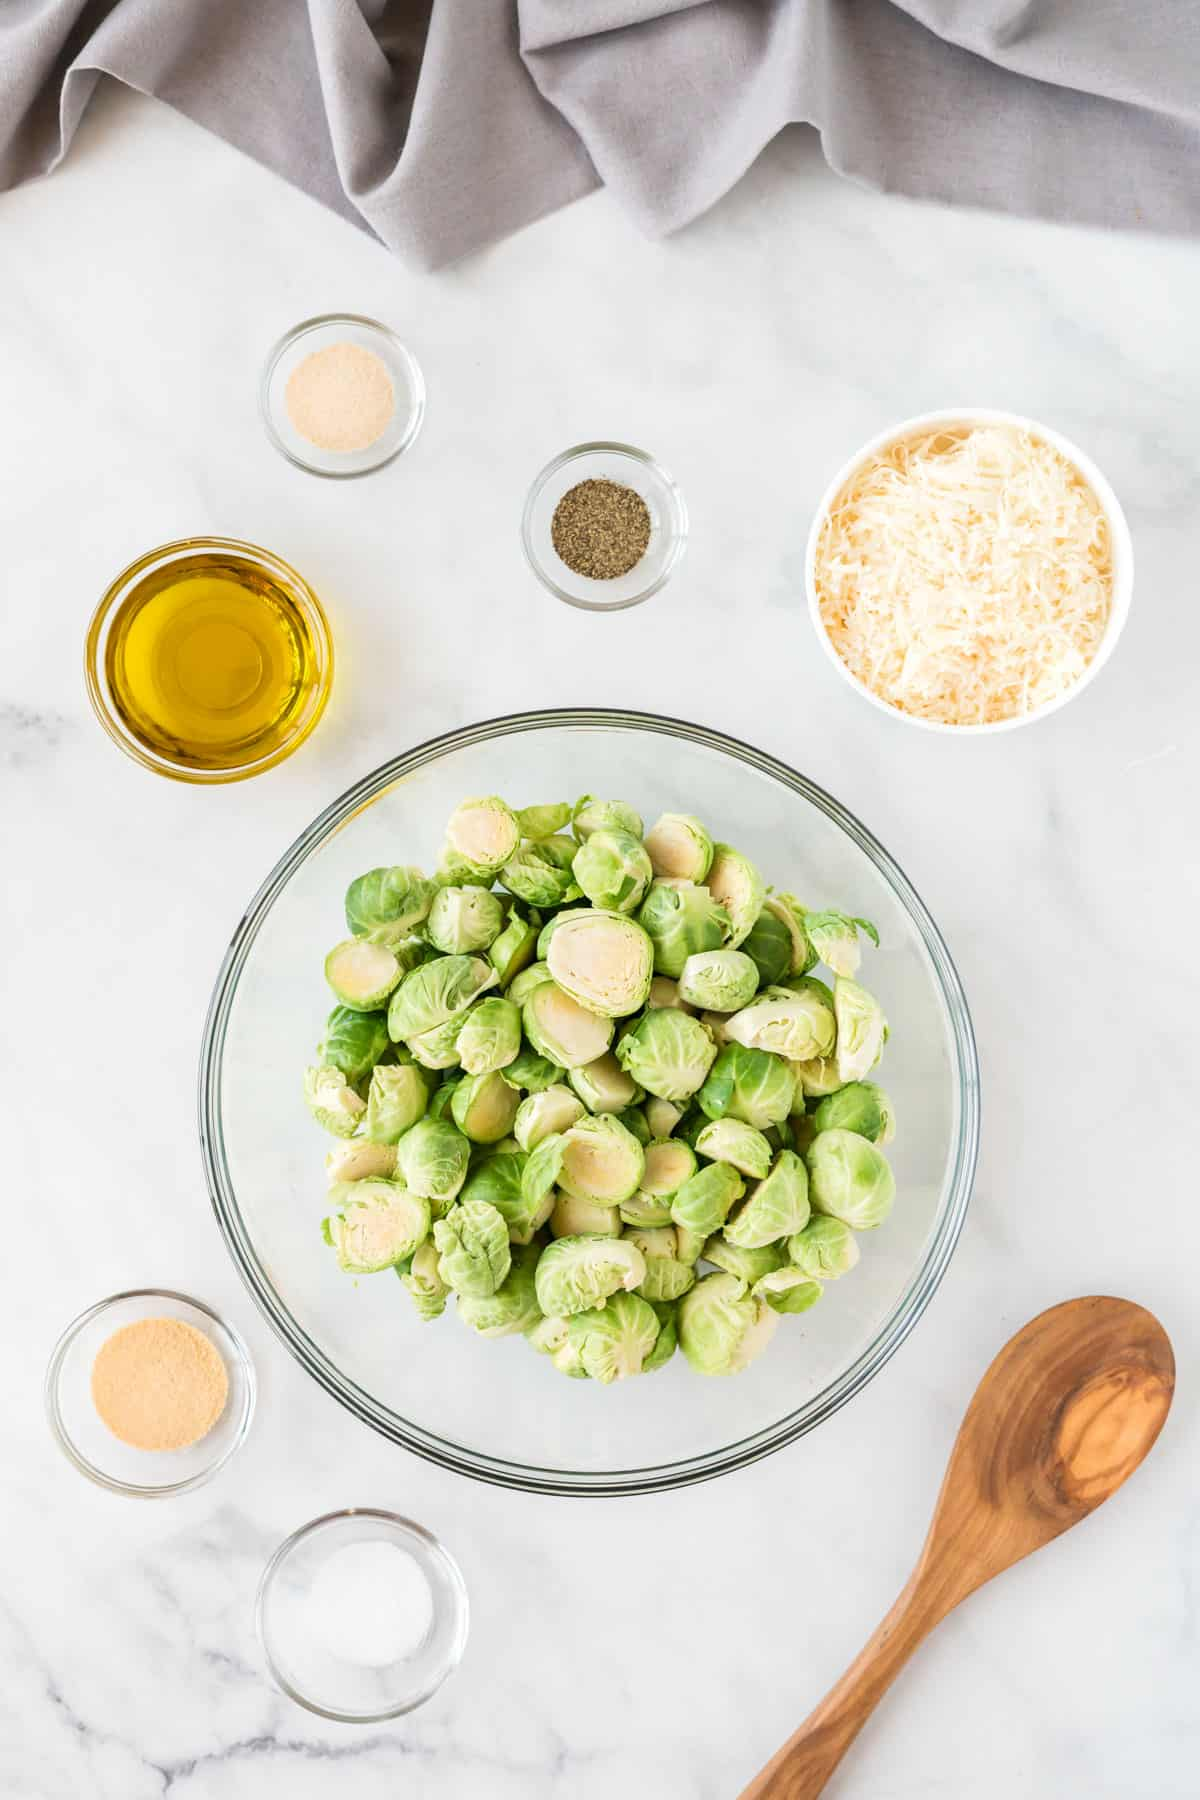 ingredients to make the brussels sprouts in bowls